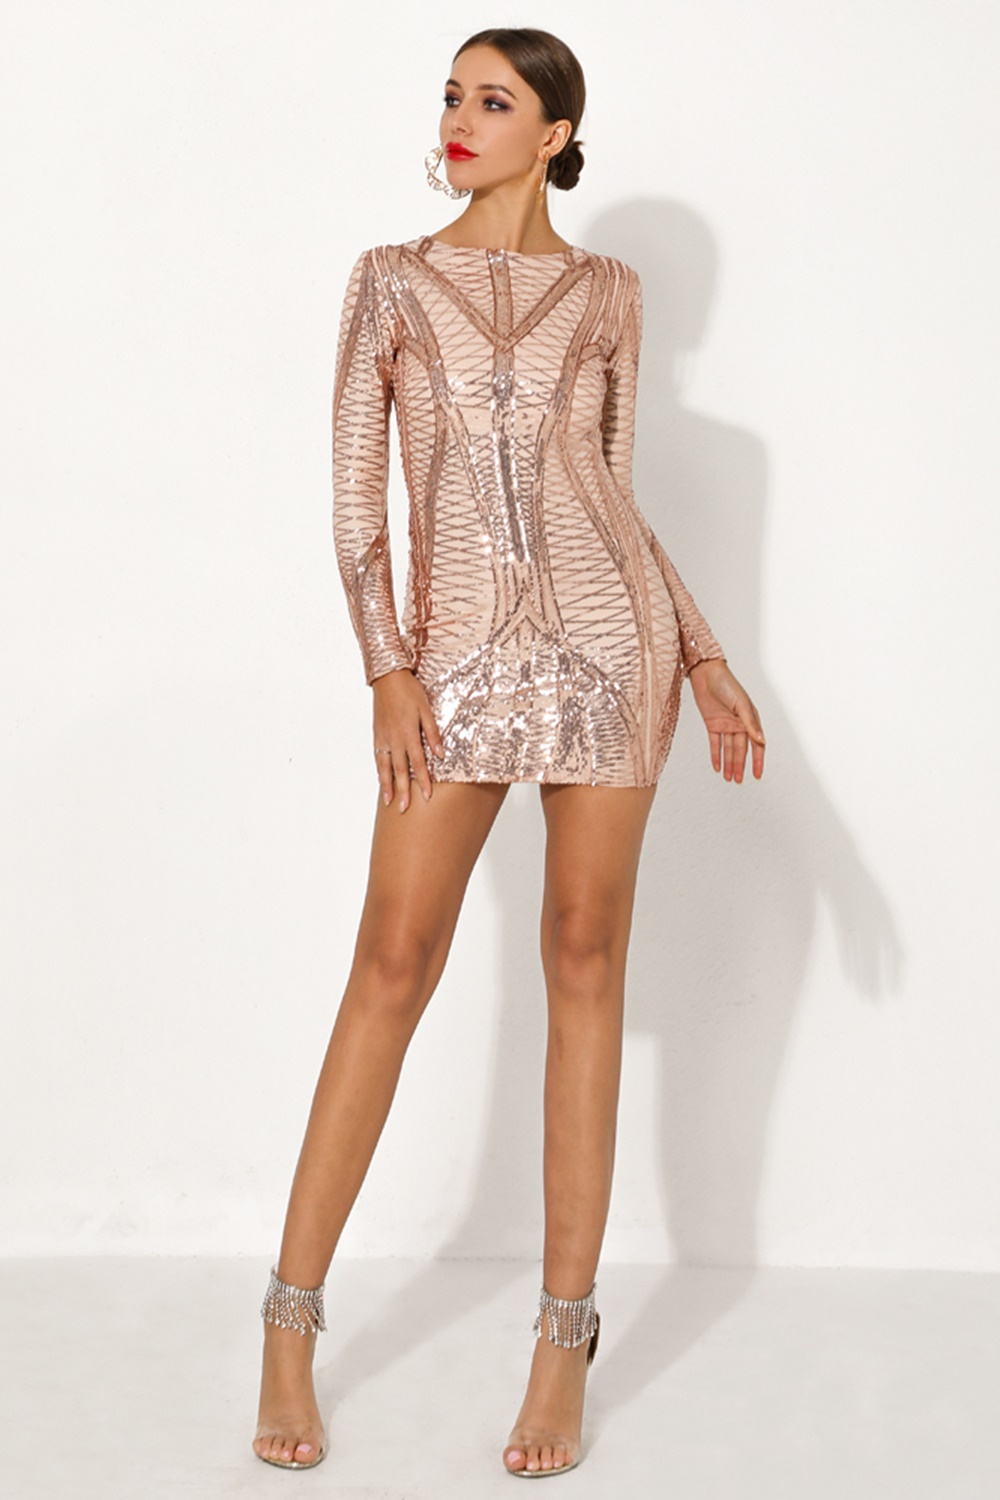 Sequin party dress - Selma